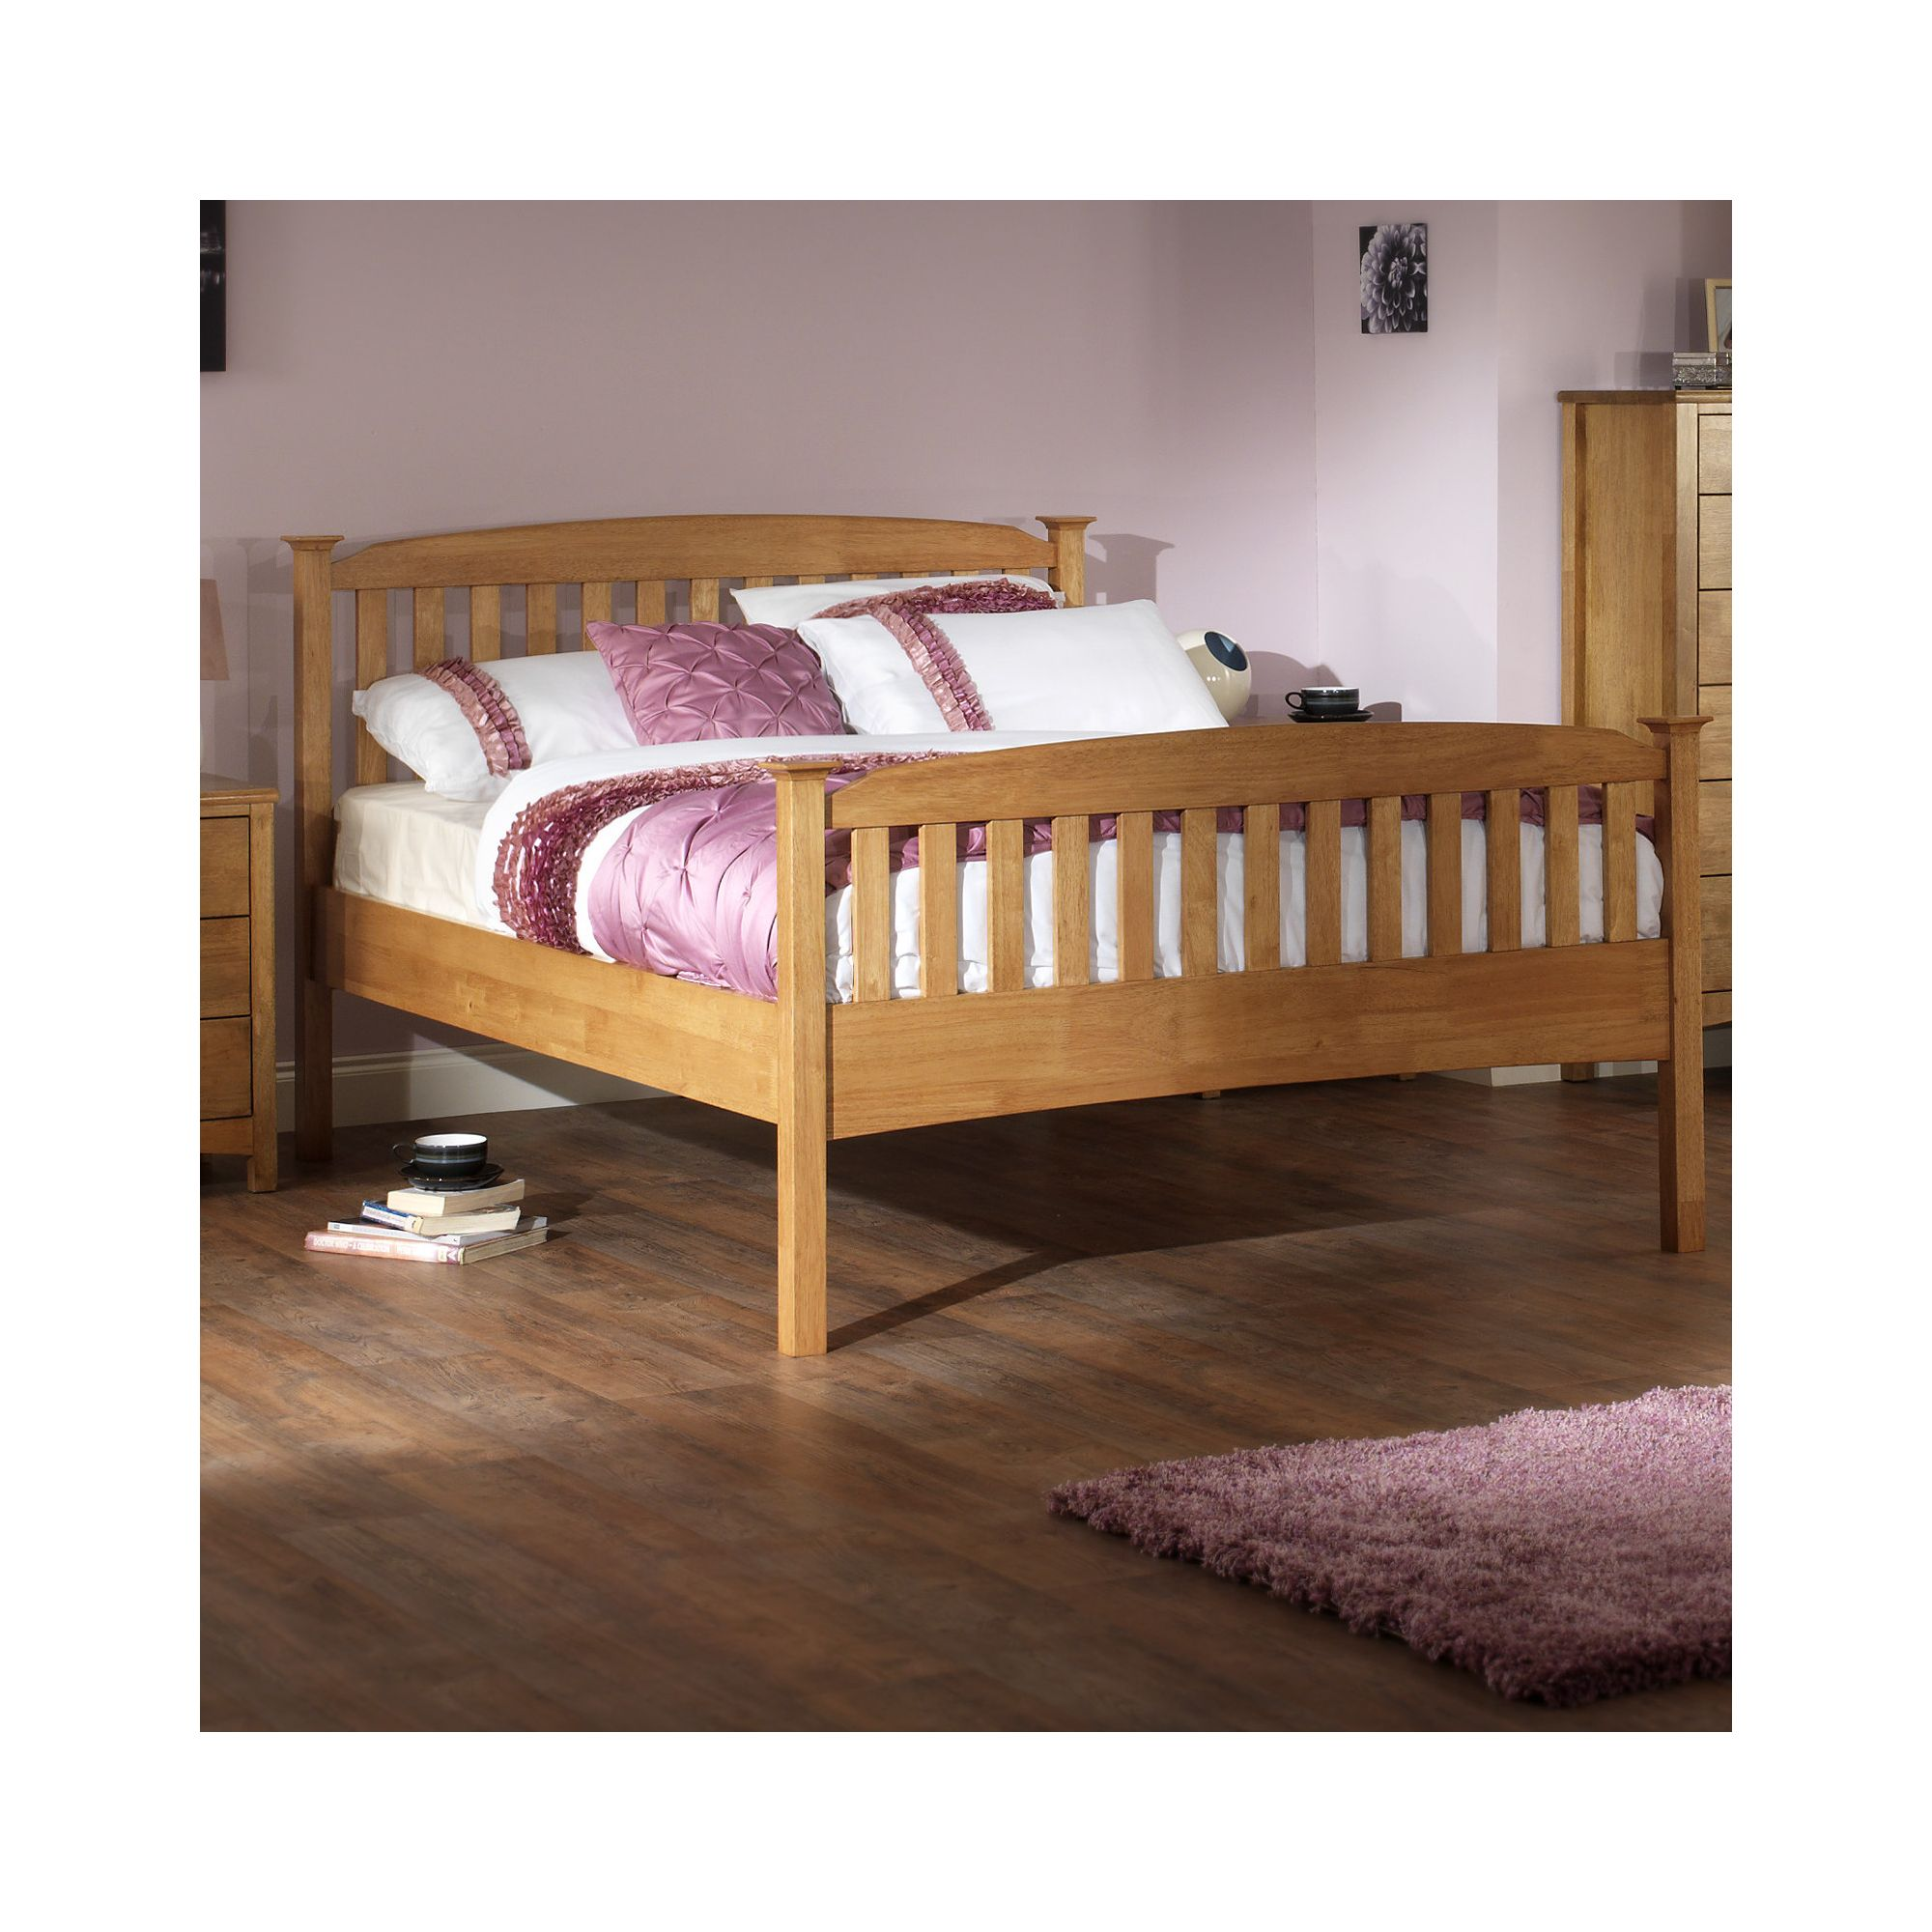 Serene Furnishings Eleanor High Foot End Bed - Honey Oak - Double at Tesco Direct